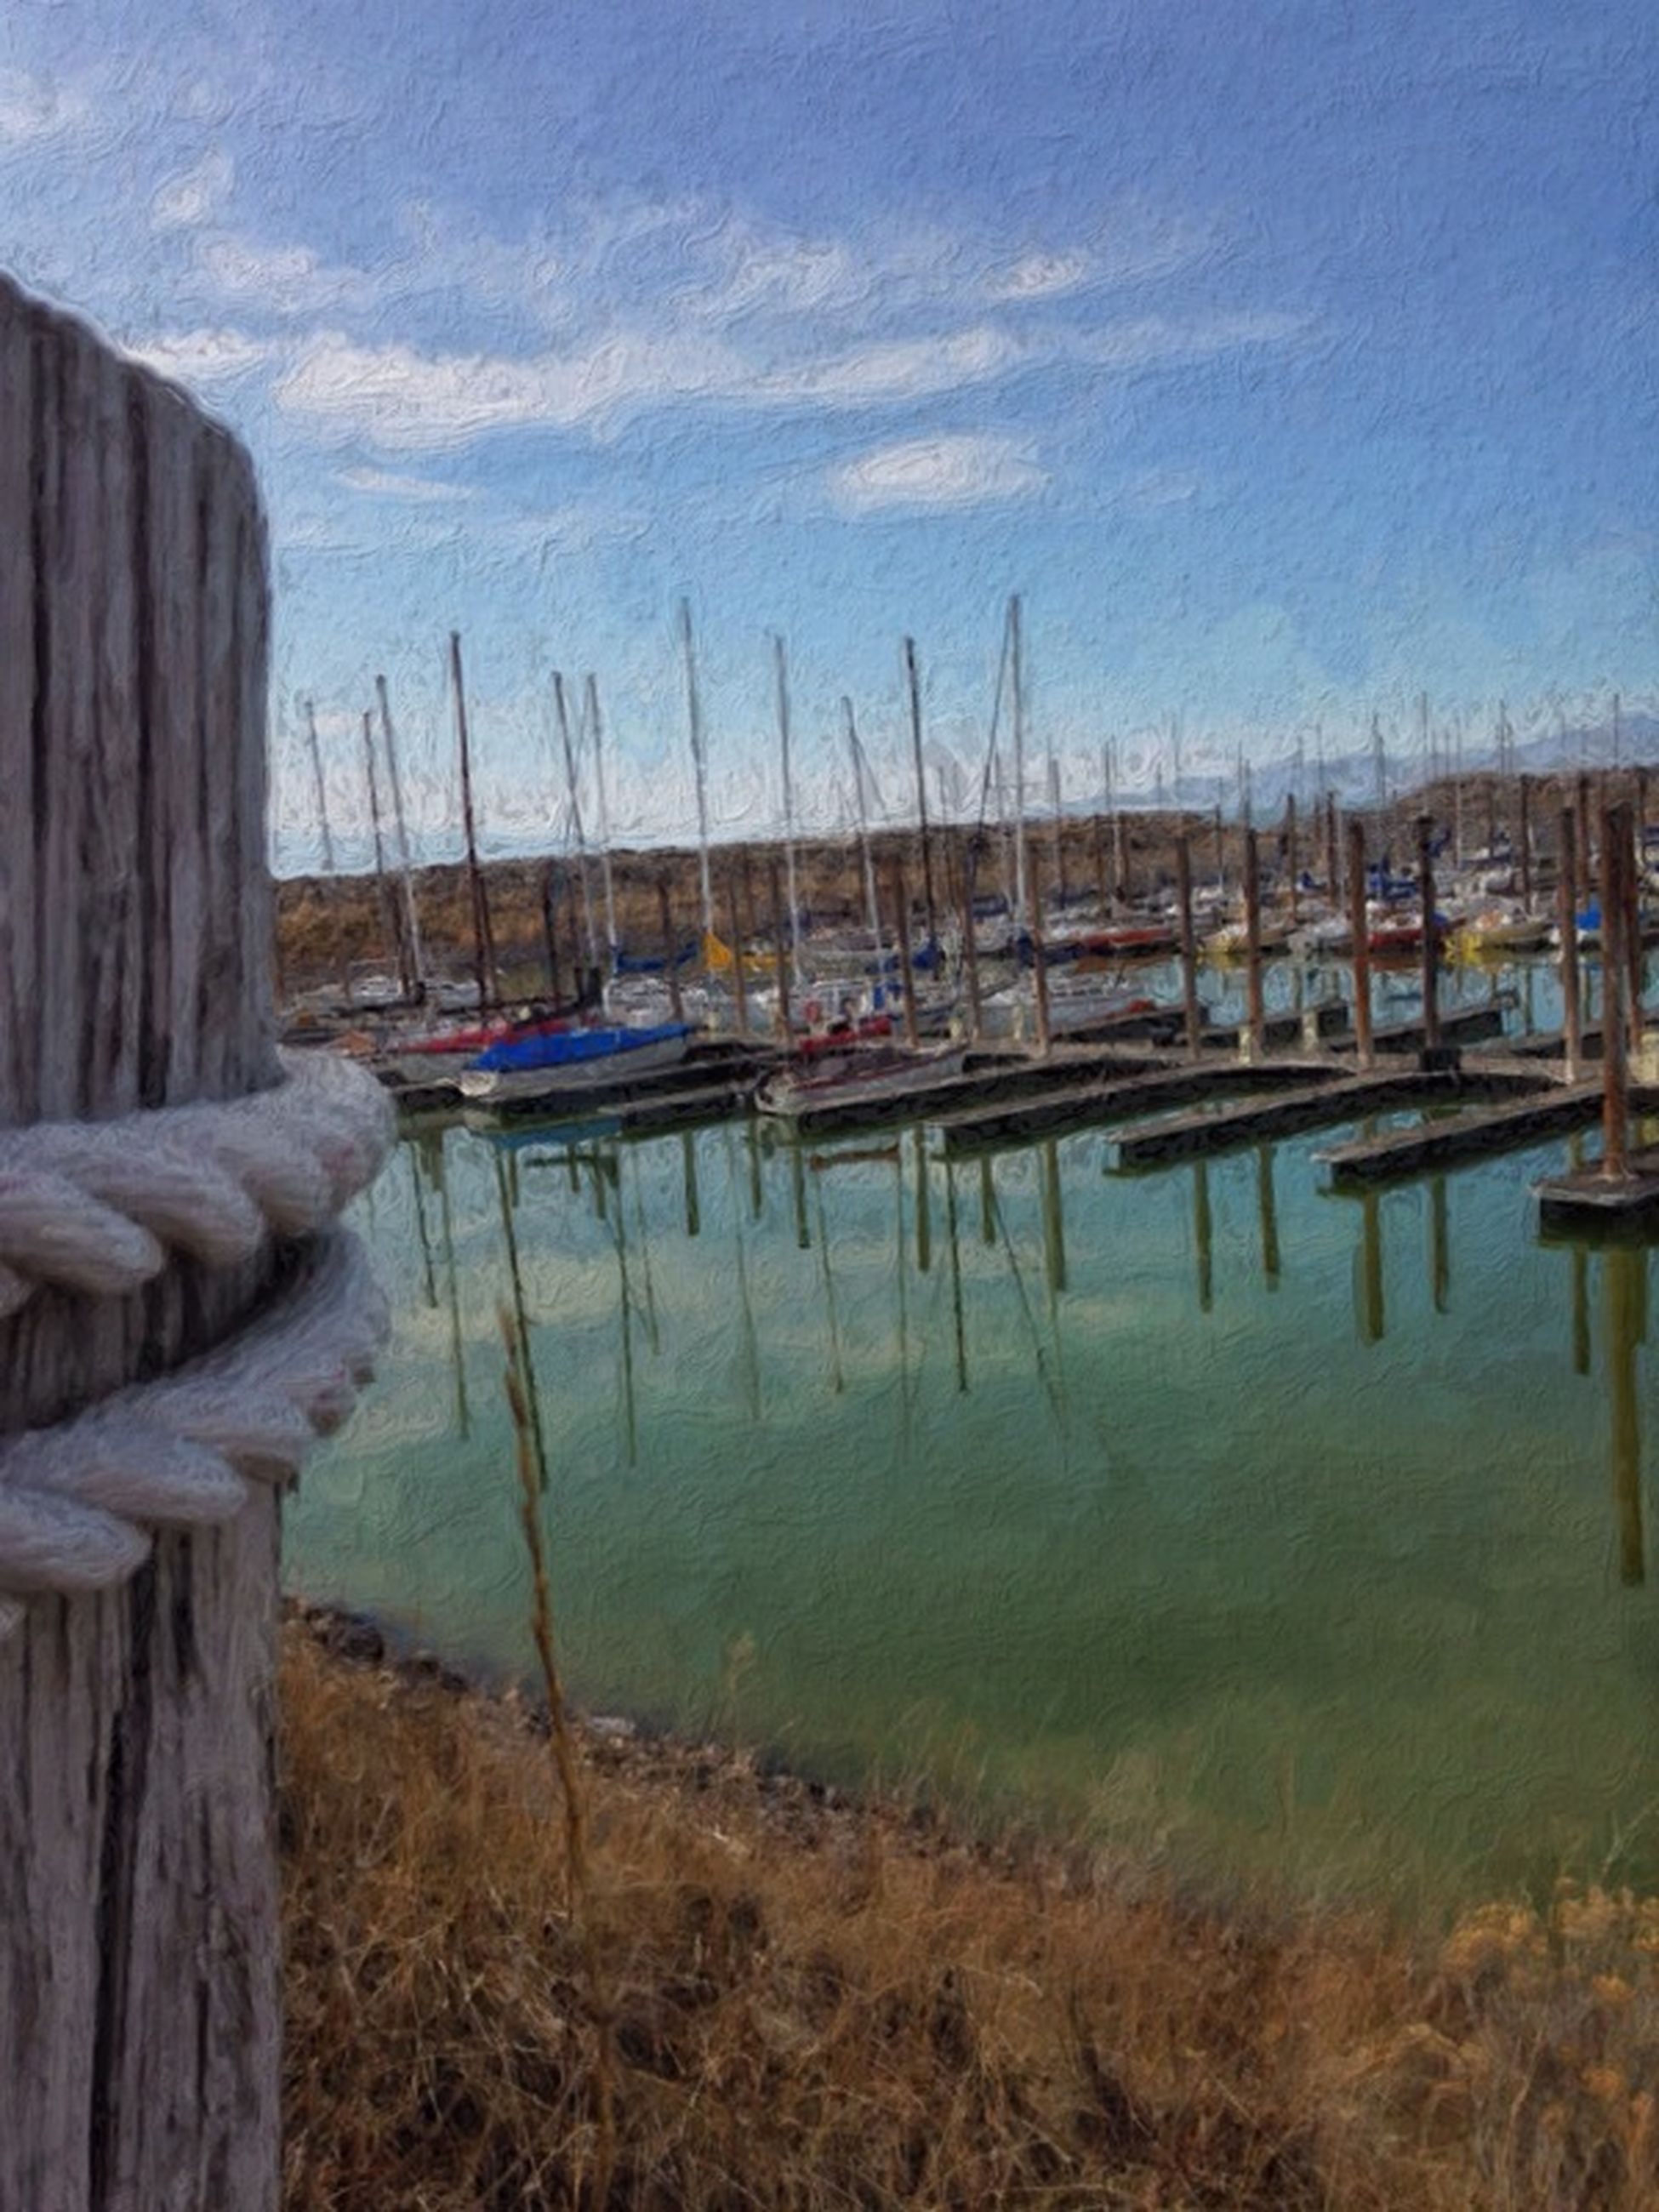 nautical vessel, moored, boat, transportation, water, mode of transport, harbor, mast, sky, sailboat, sea, reflection, lake, tranquility, rope, nature, tranquil scene, blue, outdoors, day